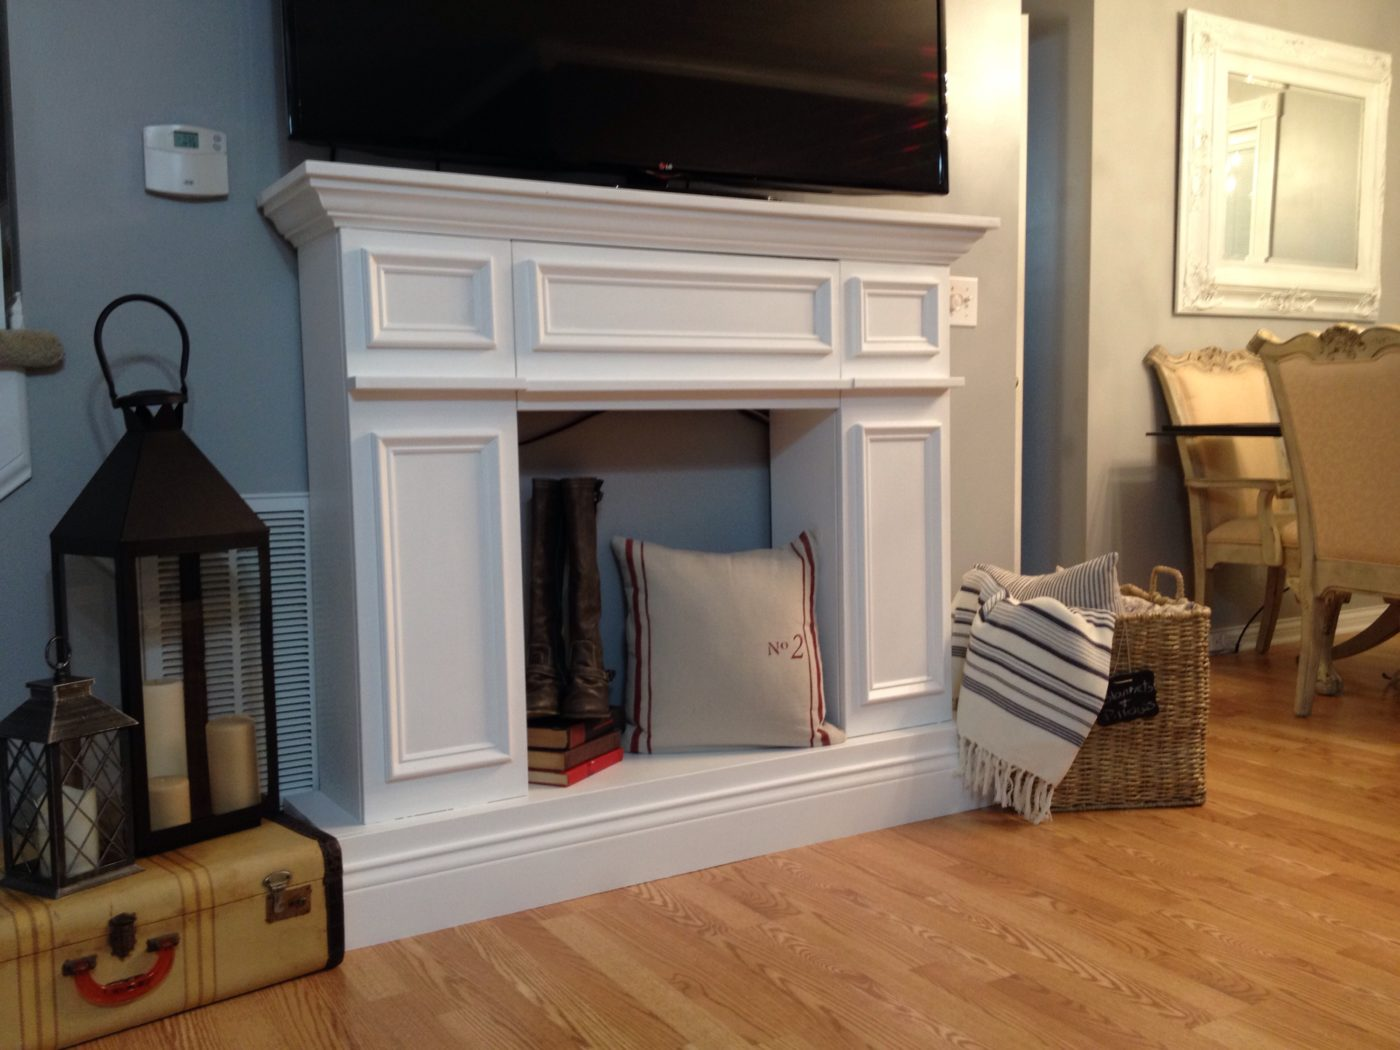 Build A Fake Fireplace Fake It Til You Make It The Making Of A Faux Fireplace